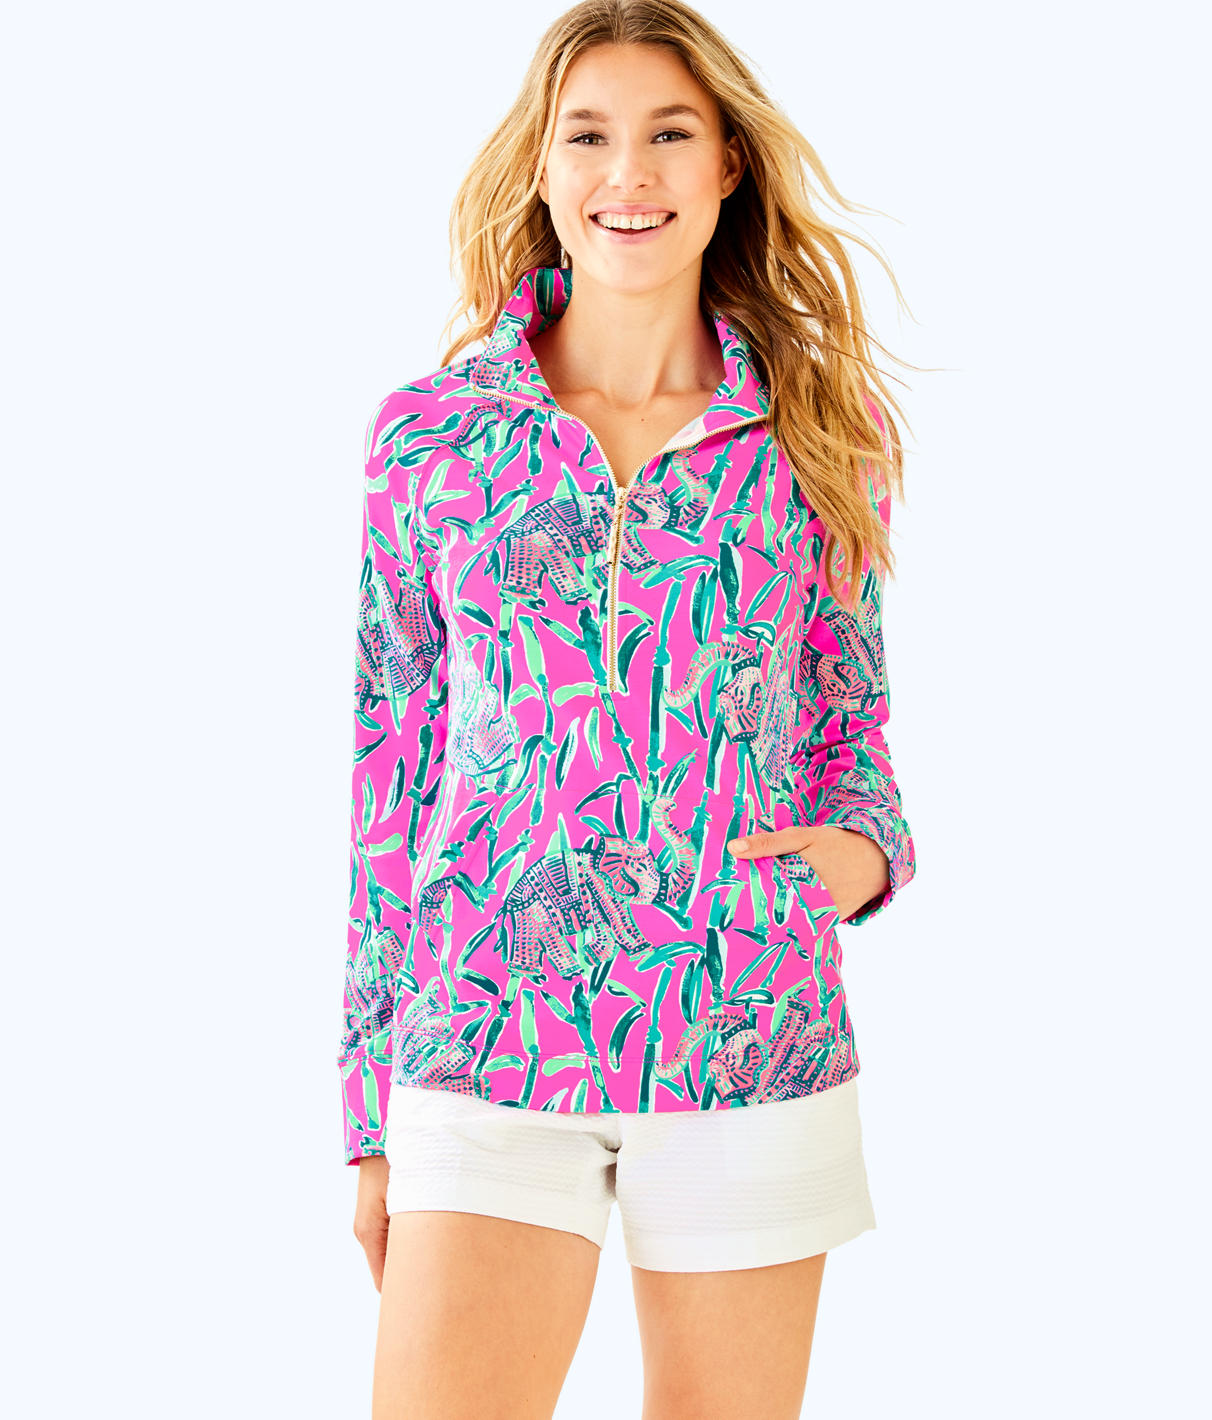 Lilly Pulitzer Lilly Pulitzer Womens UPF 50+ Skipper Printed Popover